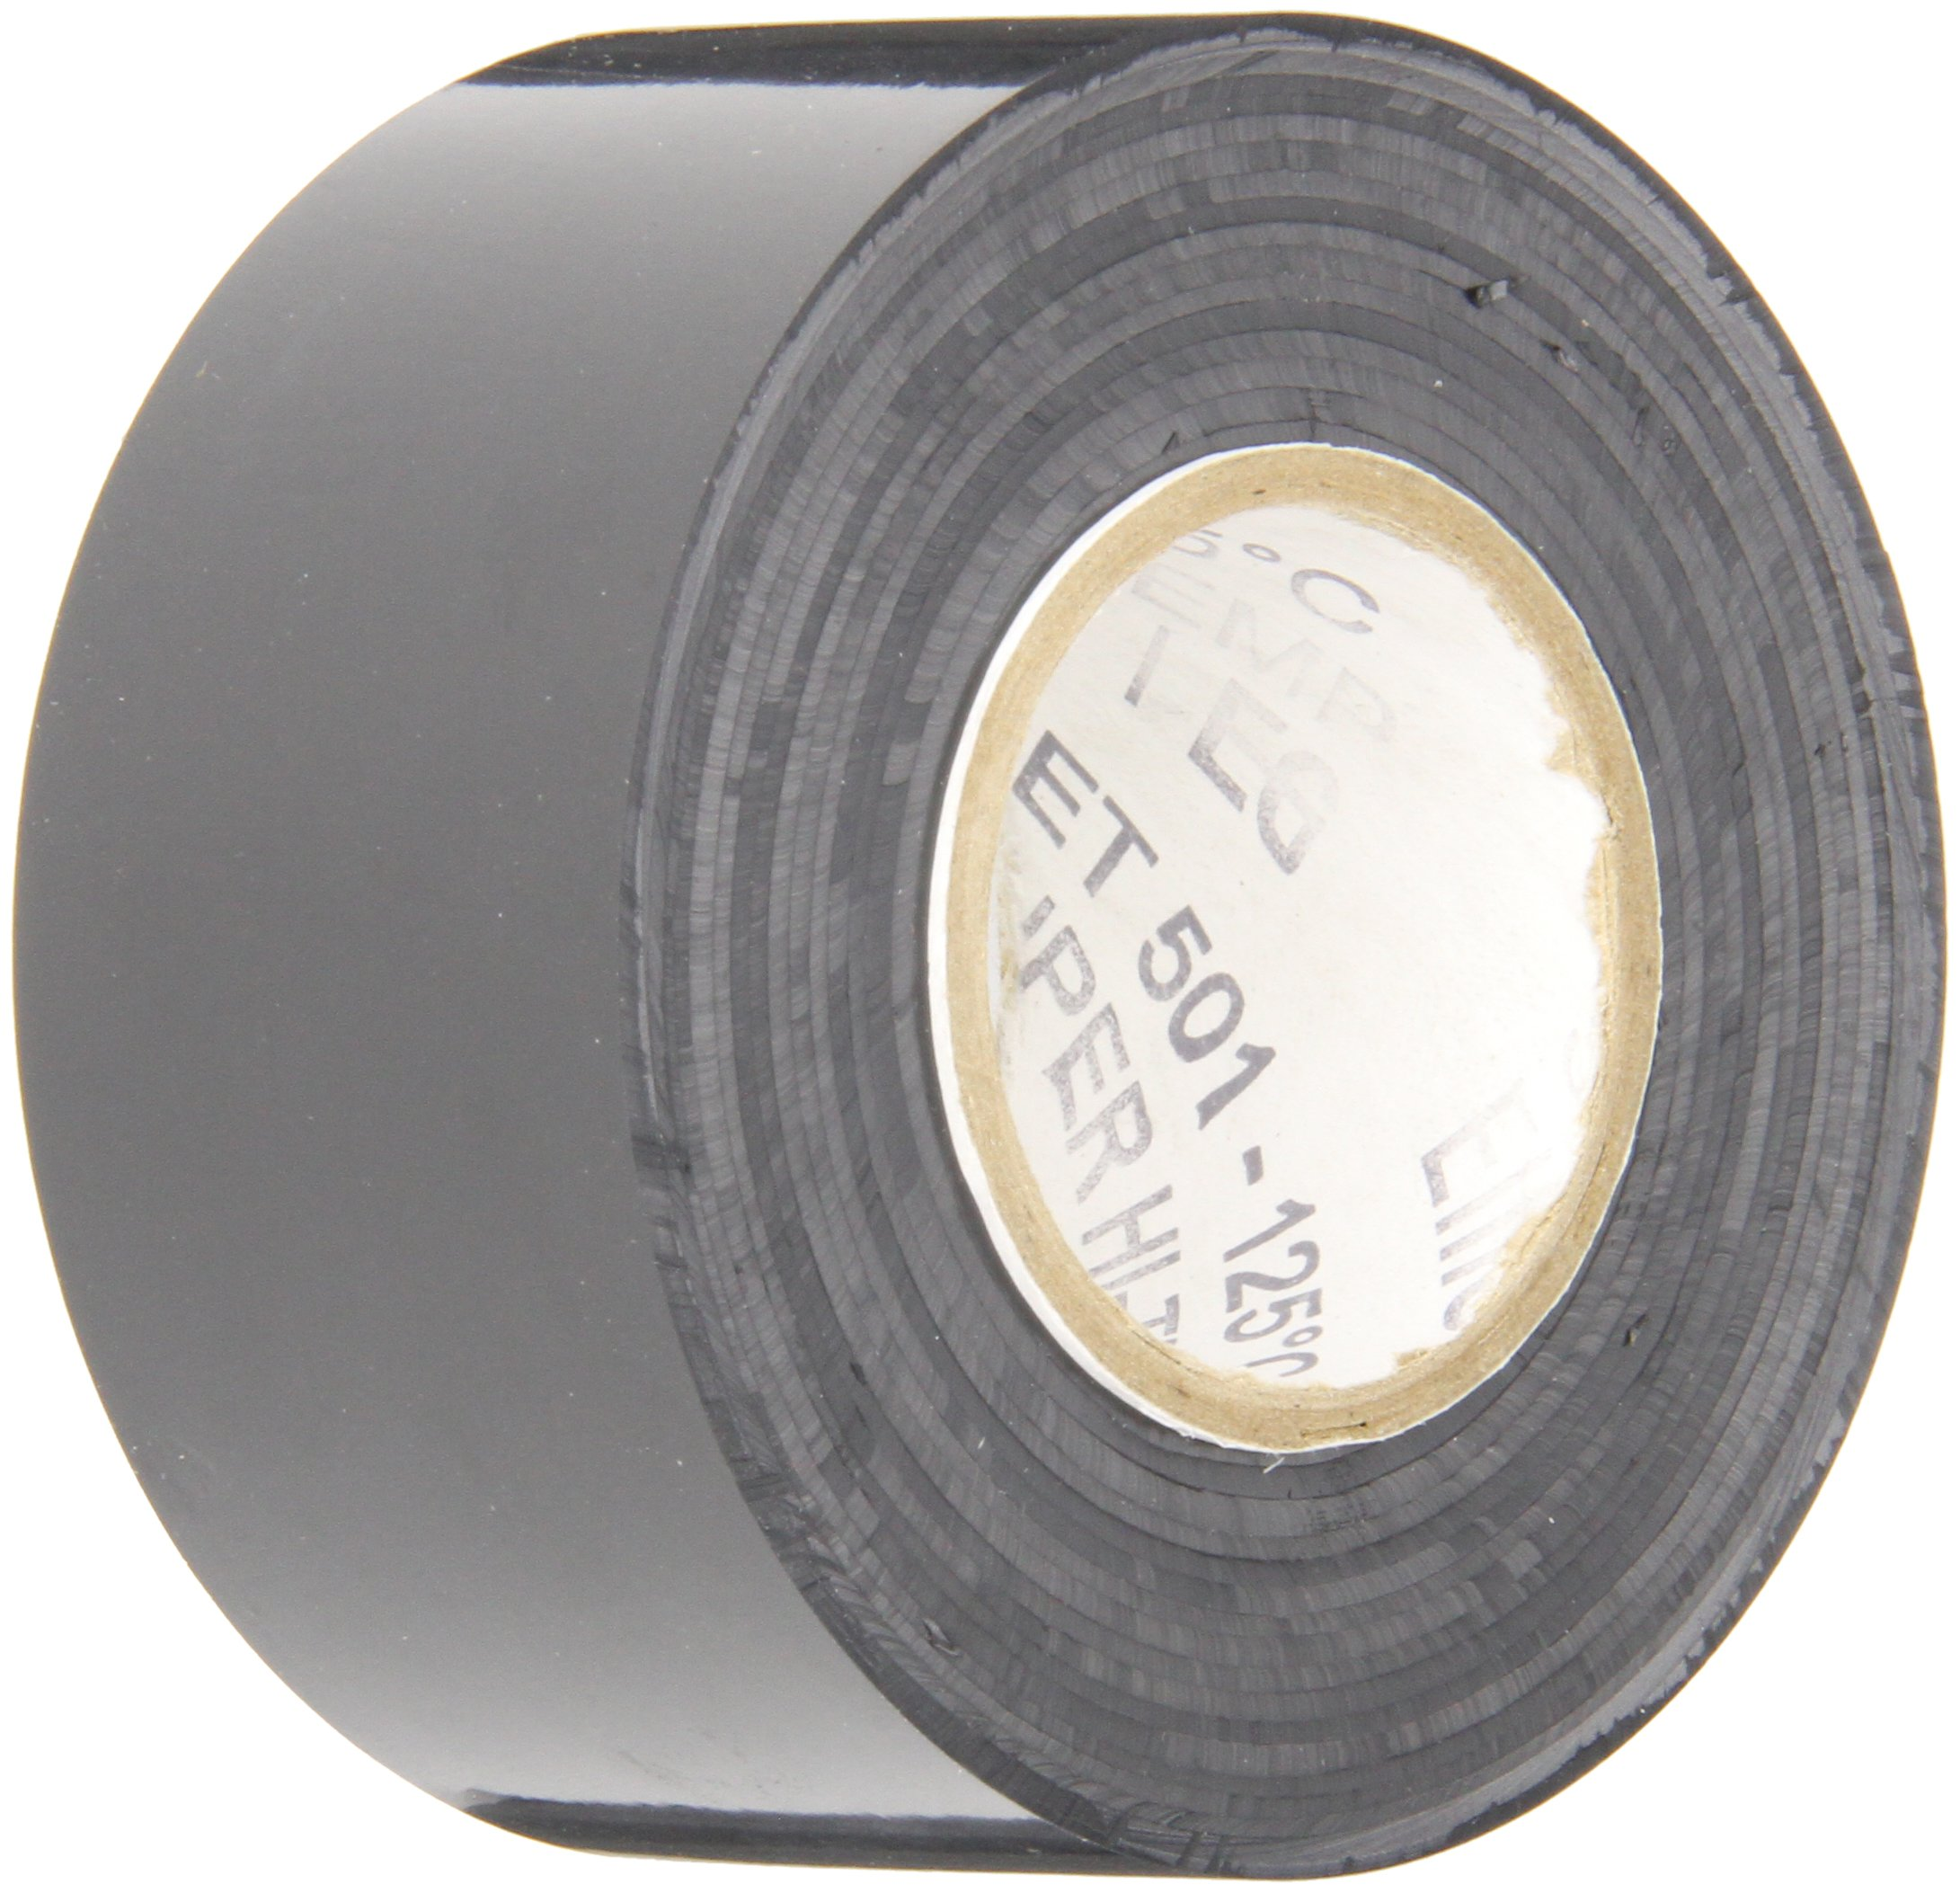 TapeCase TC790 Dry Vinyl Tape - 1.5 in. x 100 ft. Black Chrome Plating Tape Roll with High Conformability. Adhesive Tapes